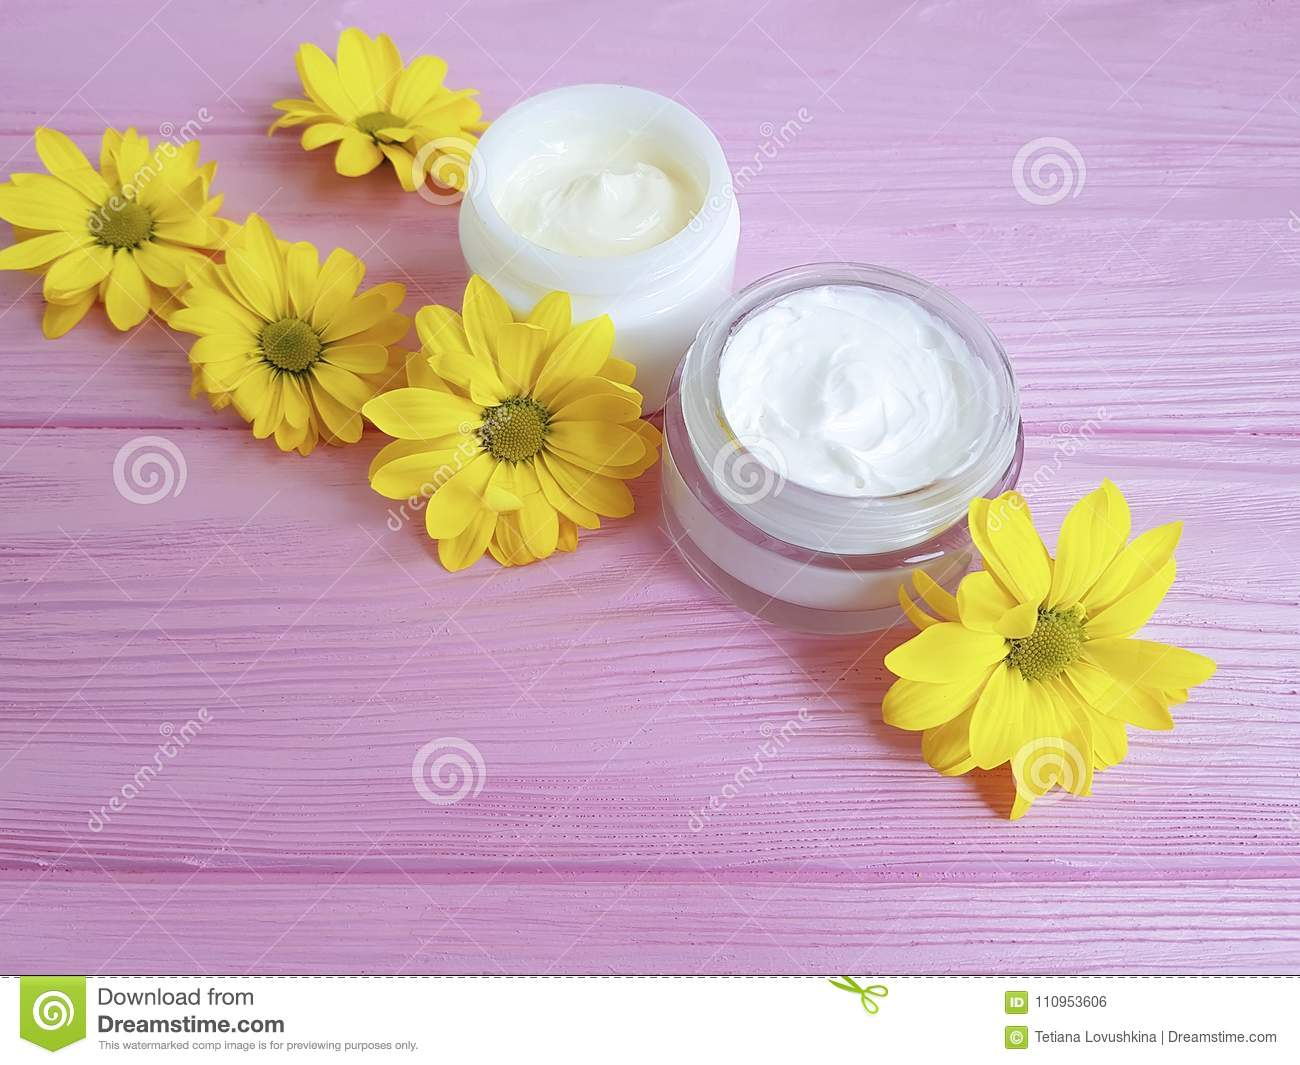 Cosmetic Facial Cream Skin Care Protection Treatment Container